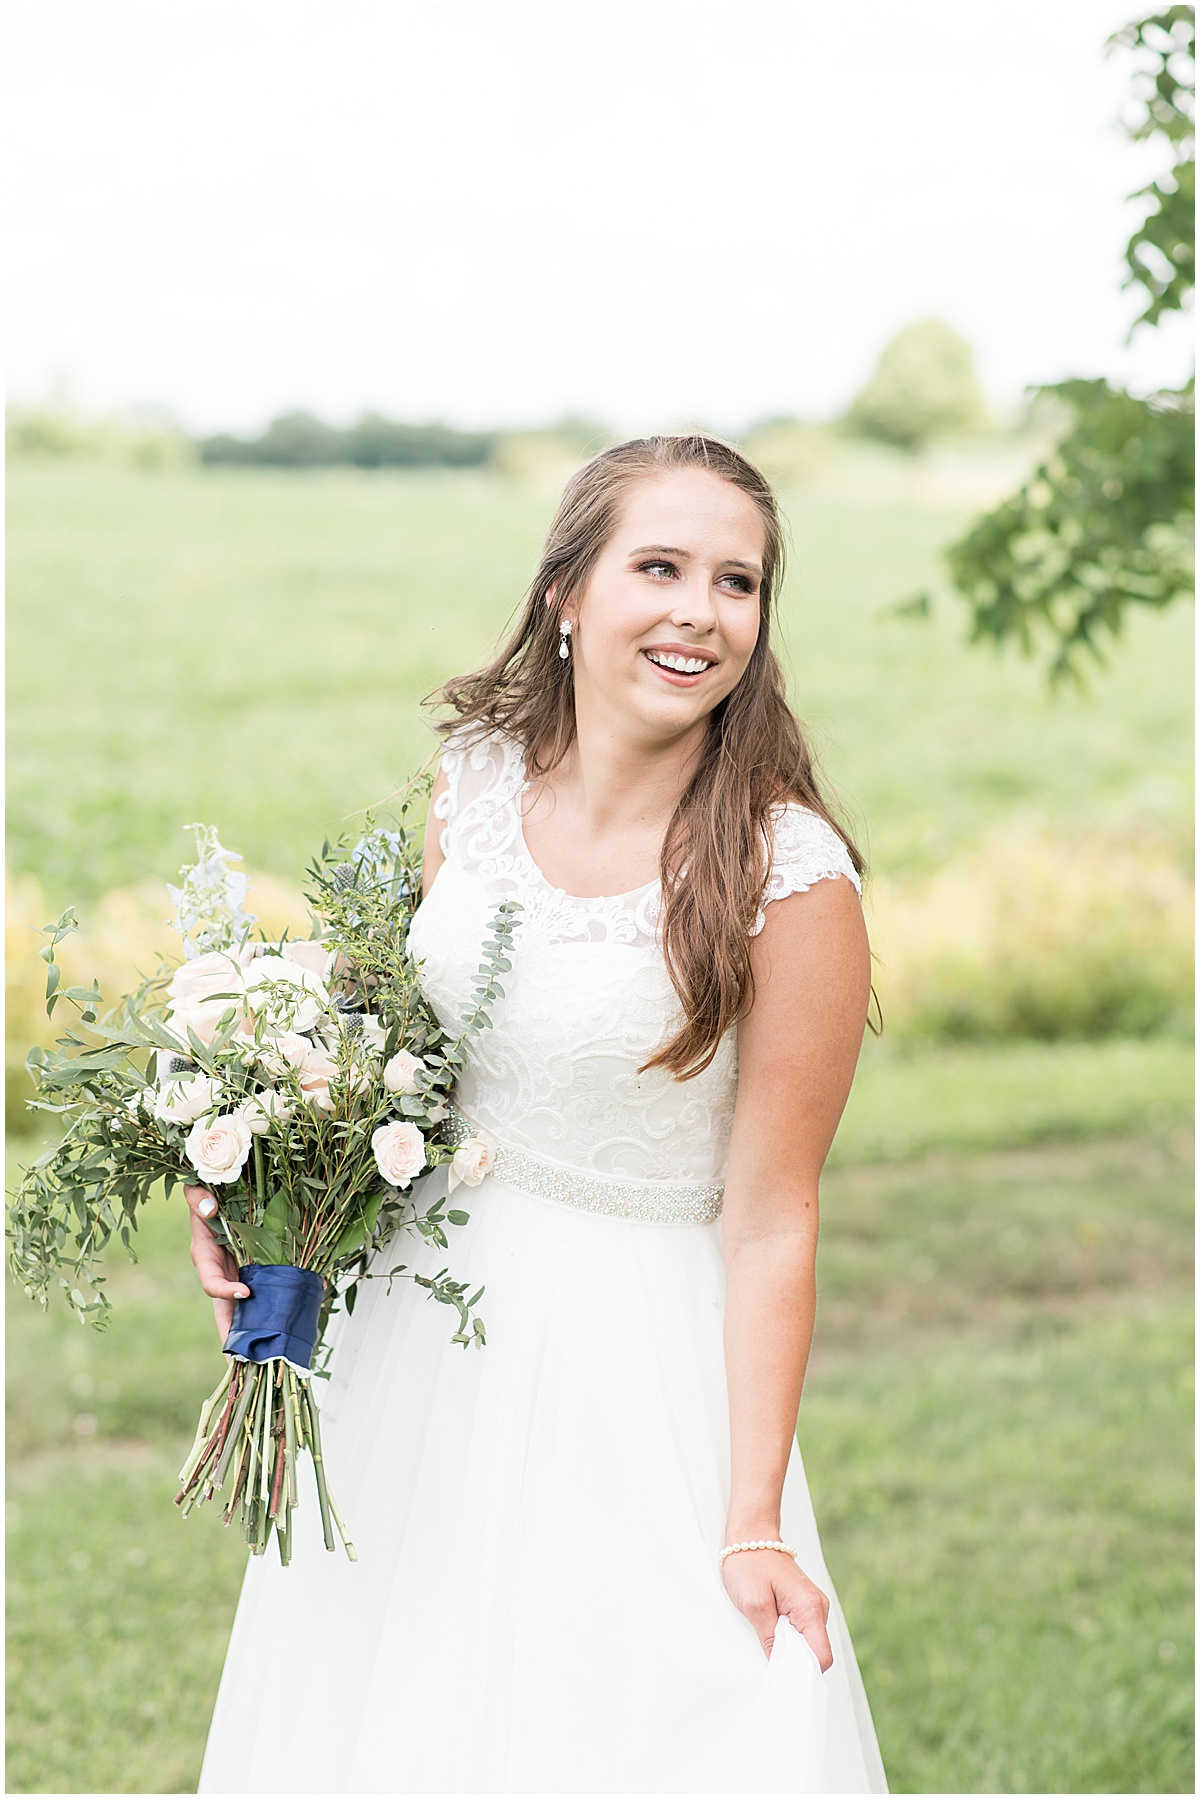 Bridal Portrait at The Blessing Barn in Lafayette, Indiana